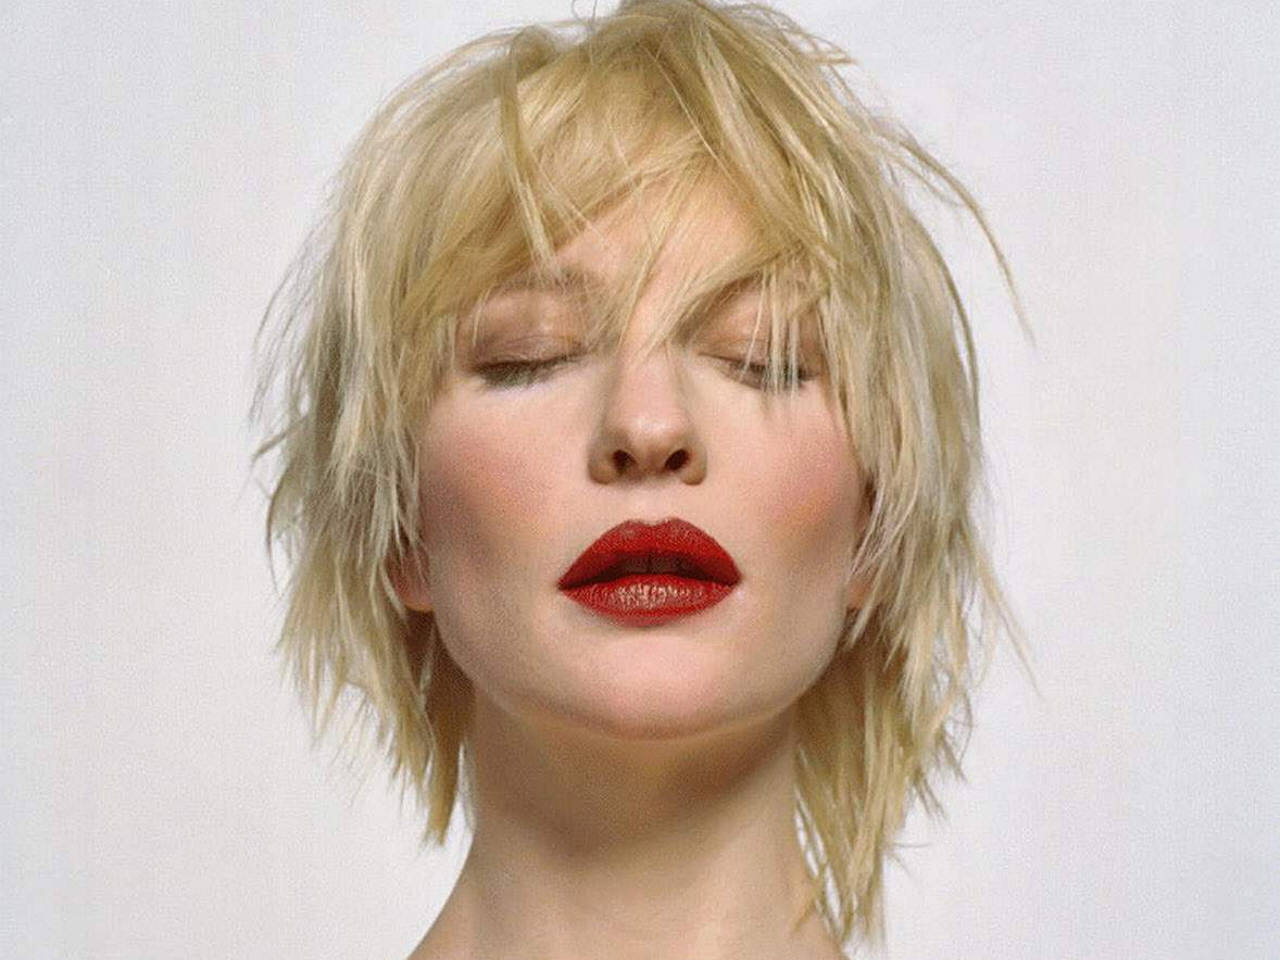 Labels: Cate Blanchett Photo Gallery , Hot Cate Blanchett Pictures ... Cate Blanchett